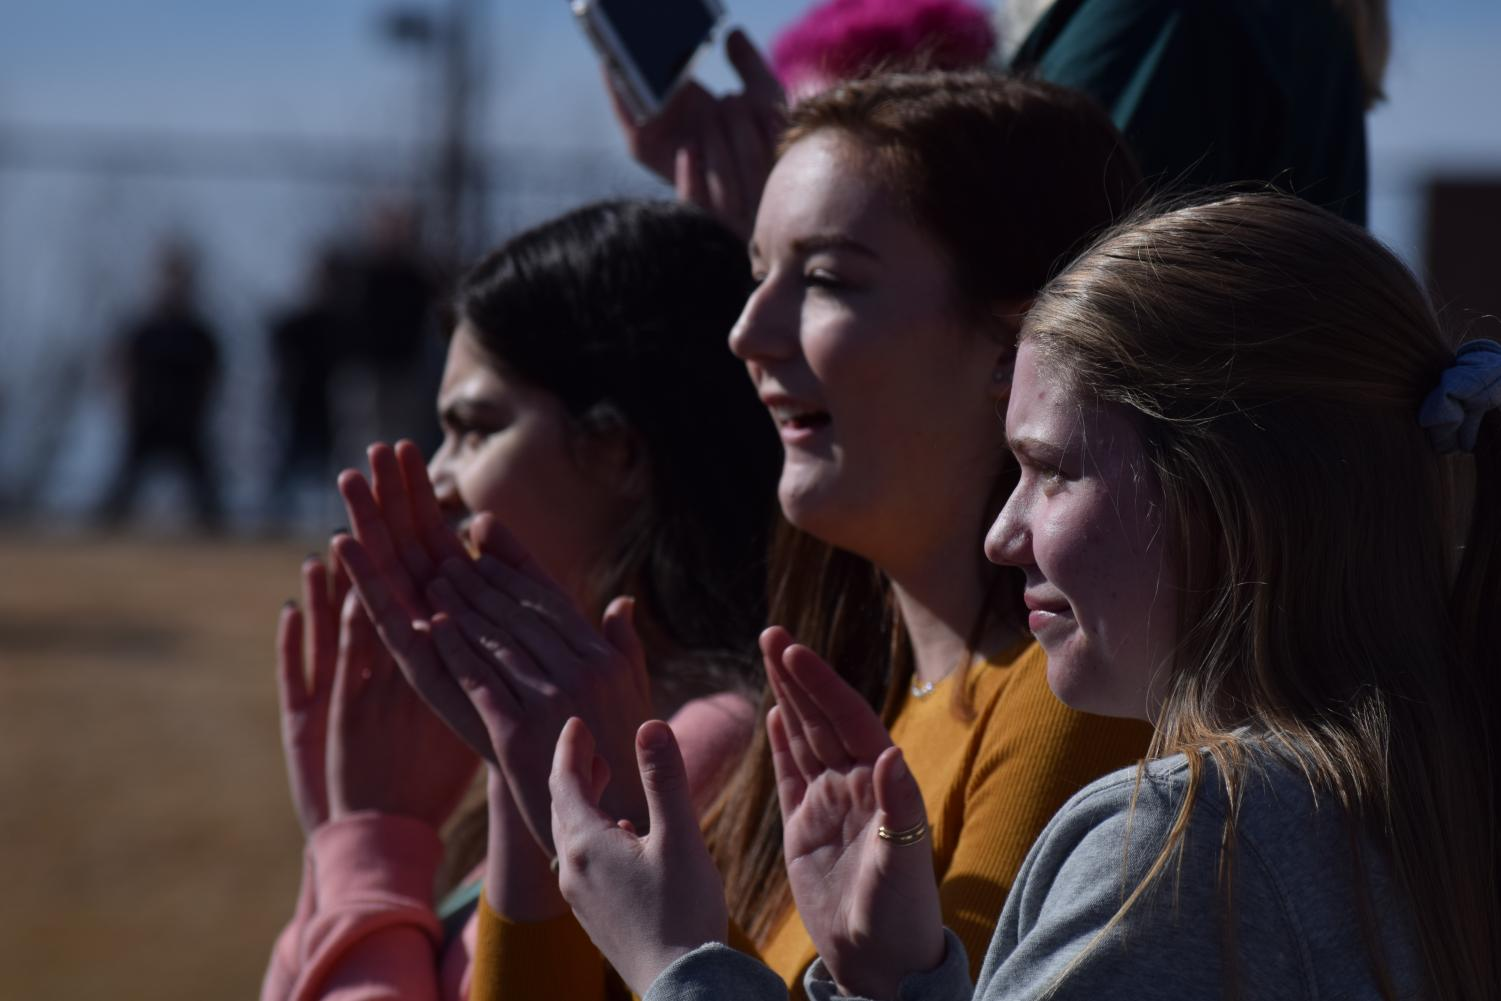 Emily Berton, Ramsha Ahamad, and Brooke Pantaleo cheer on the sea of students after a heartfelt speech at the CT Walk-out.